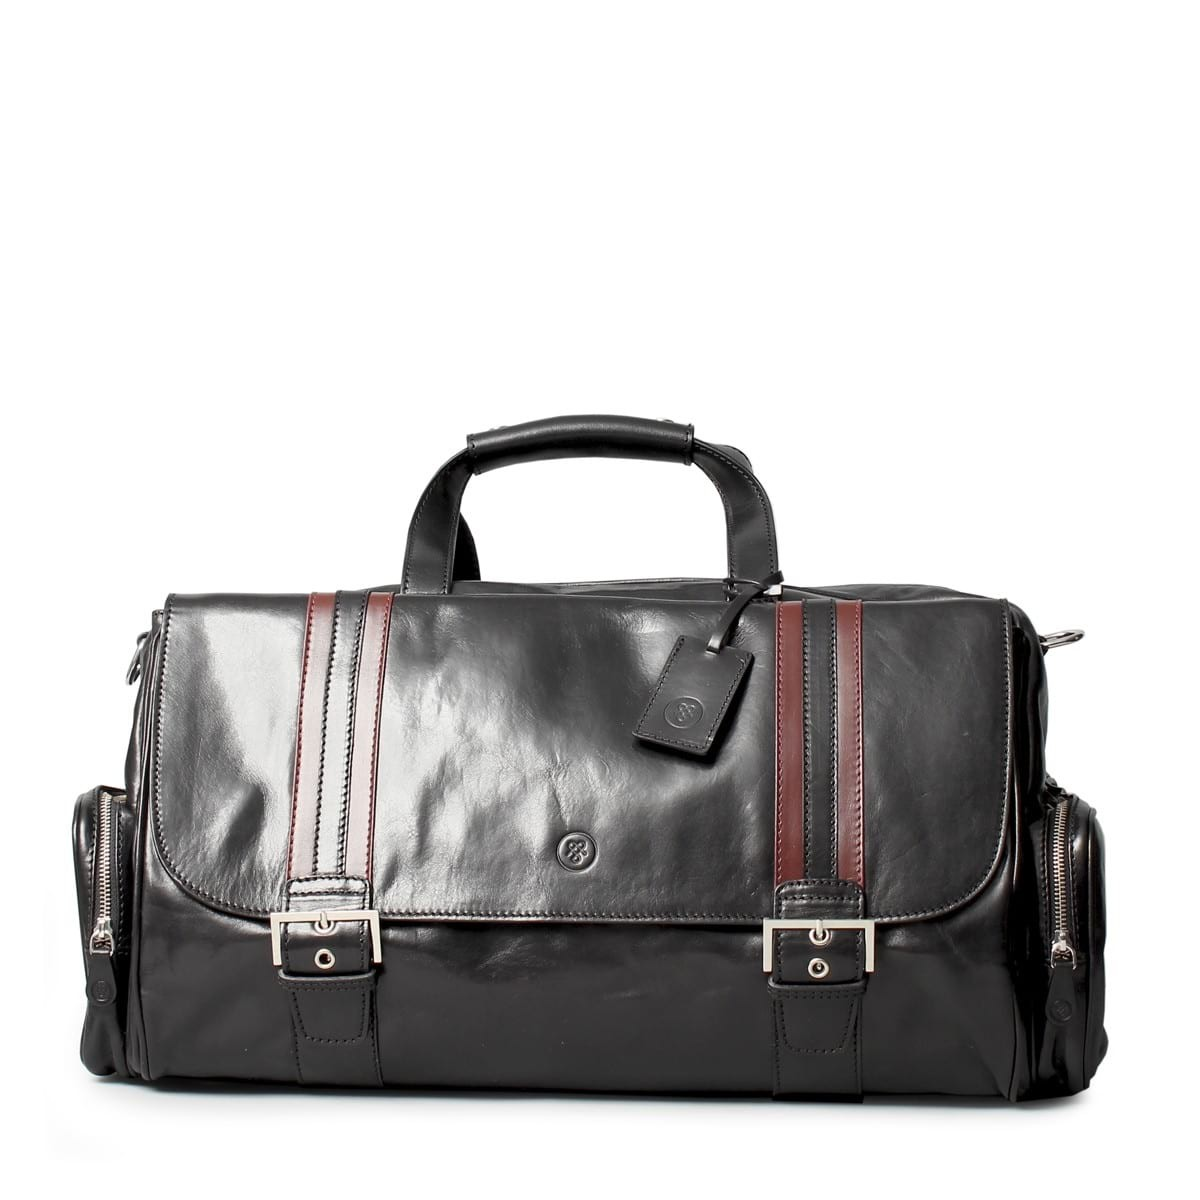 Mens Leather Travel Bags Uk   ReGreen Springfield ac536bcc96